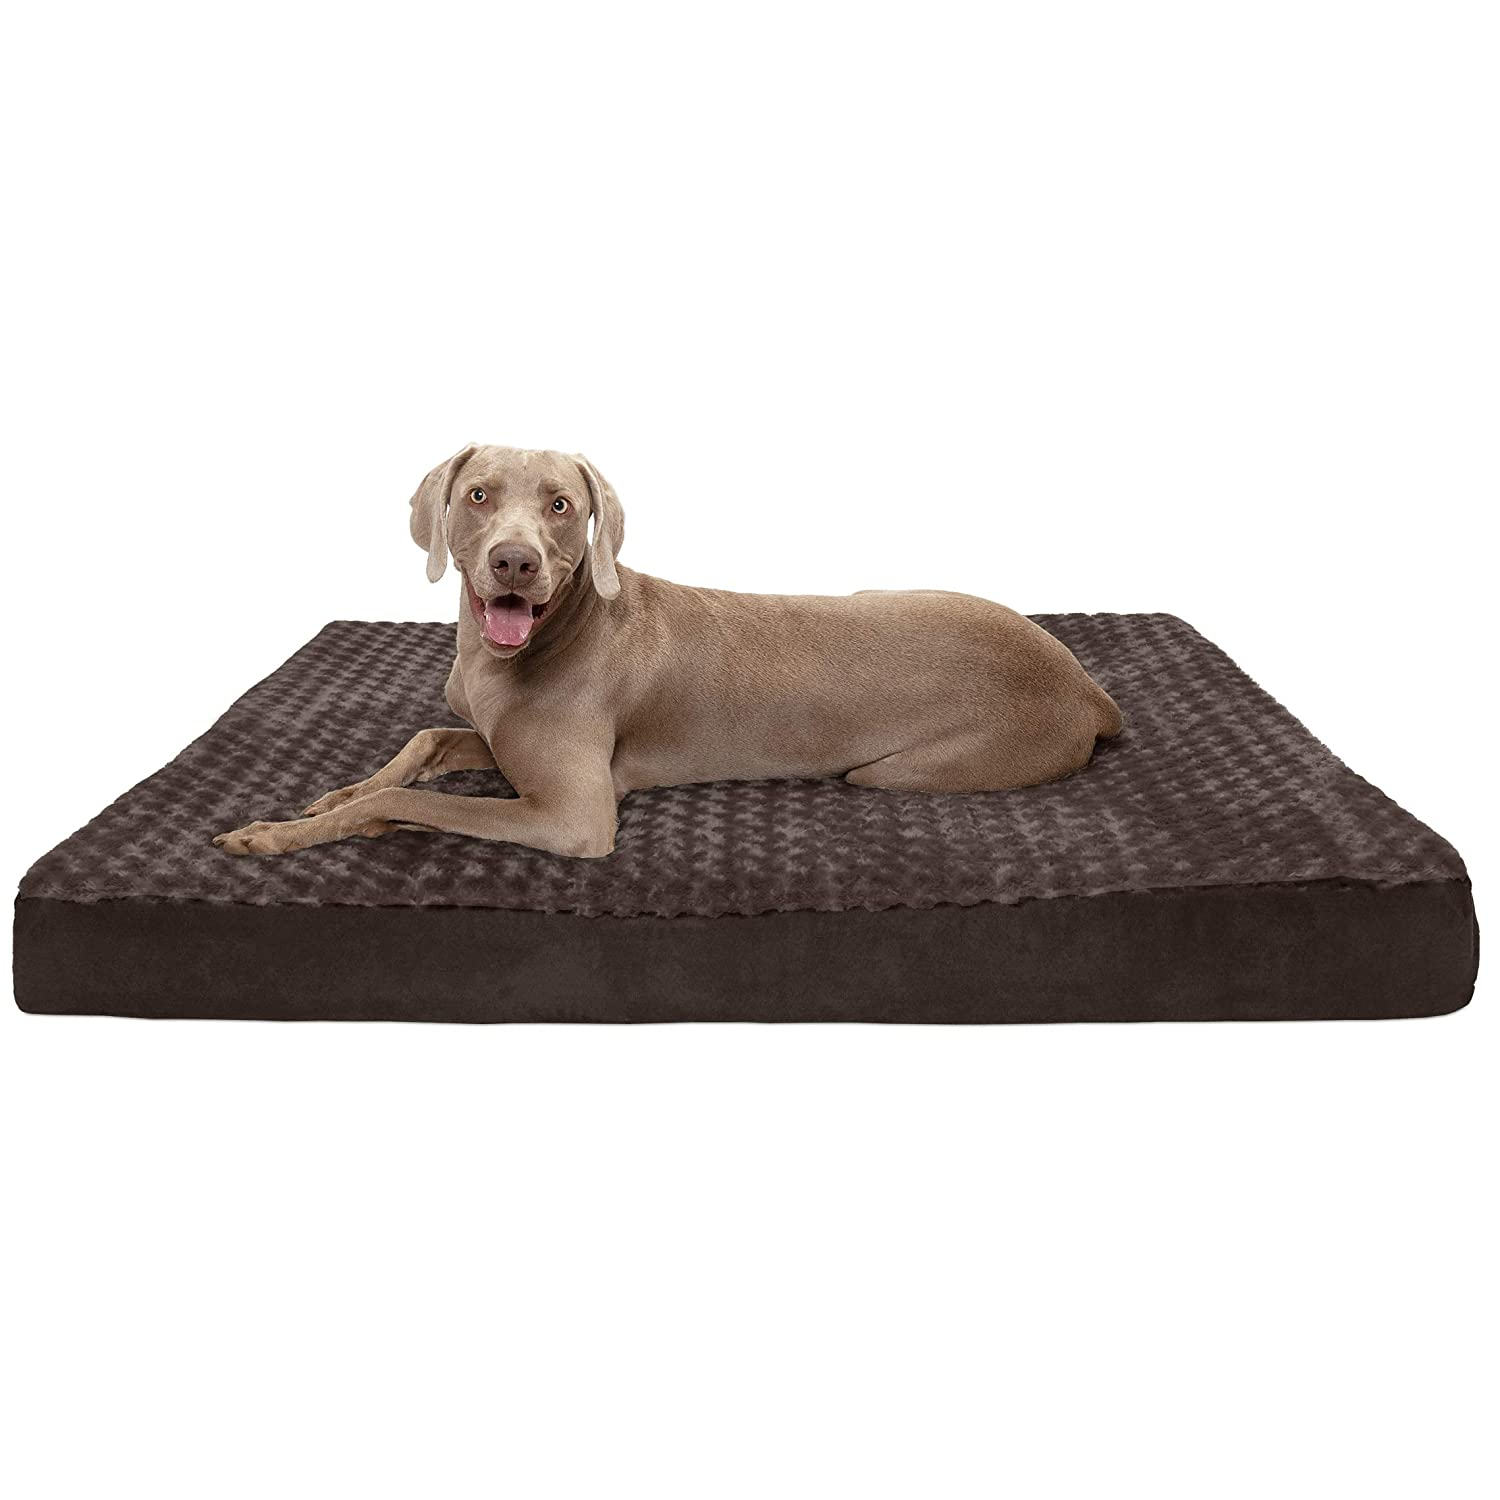 Chocolate Jumbo Plus Chocolate Jumbo Plus FurHaven Pet Dog Bed   Deluxe Cooling Gel Memory Foam Orthopedic Ultra Plush Mattress Pet Bed for Dogs & Cats, Chocolate, Jumbo Plus